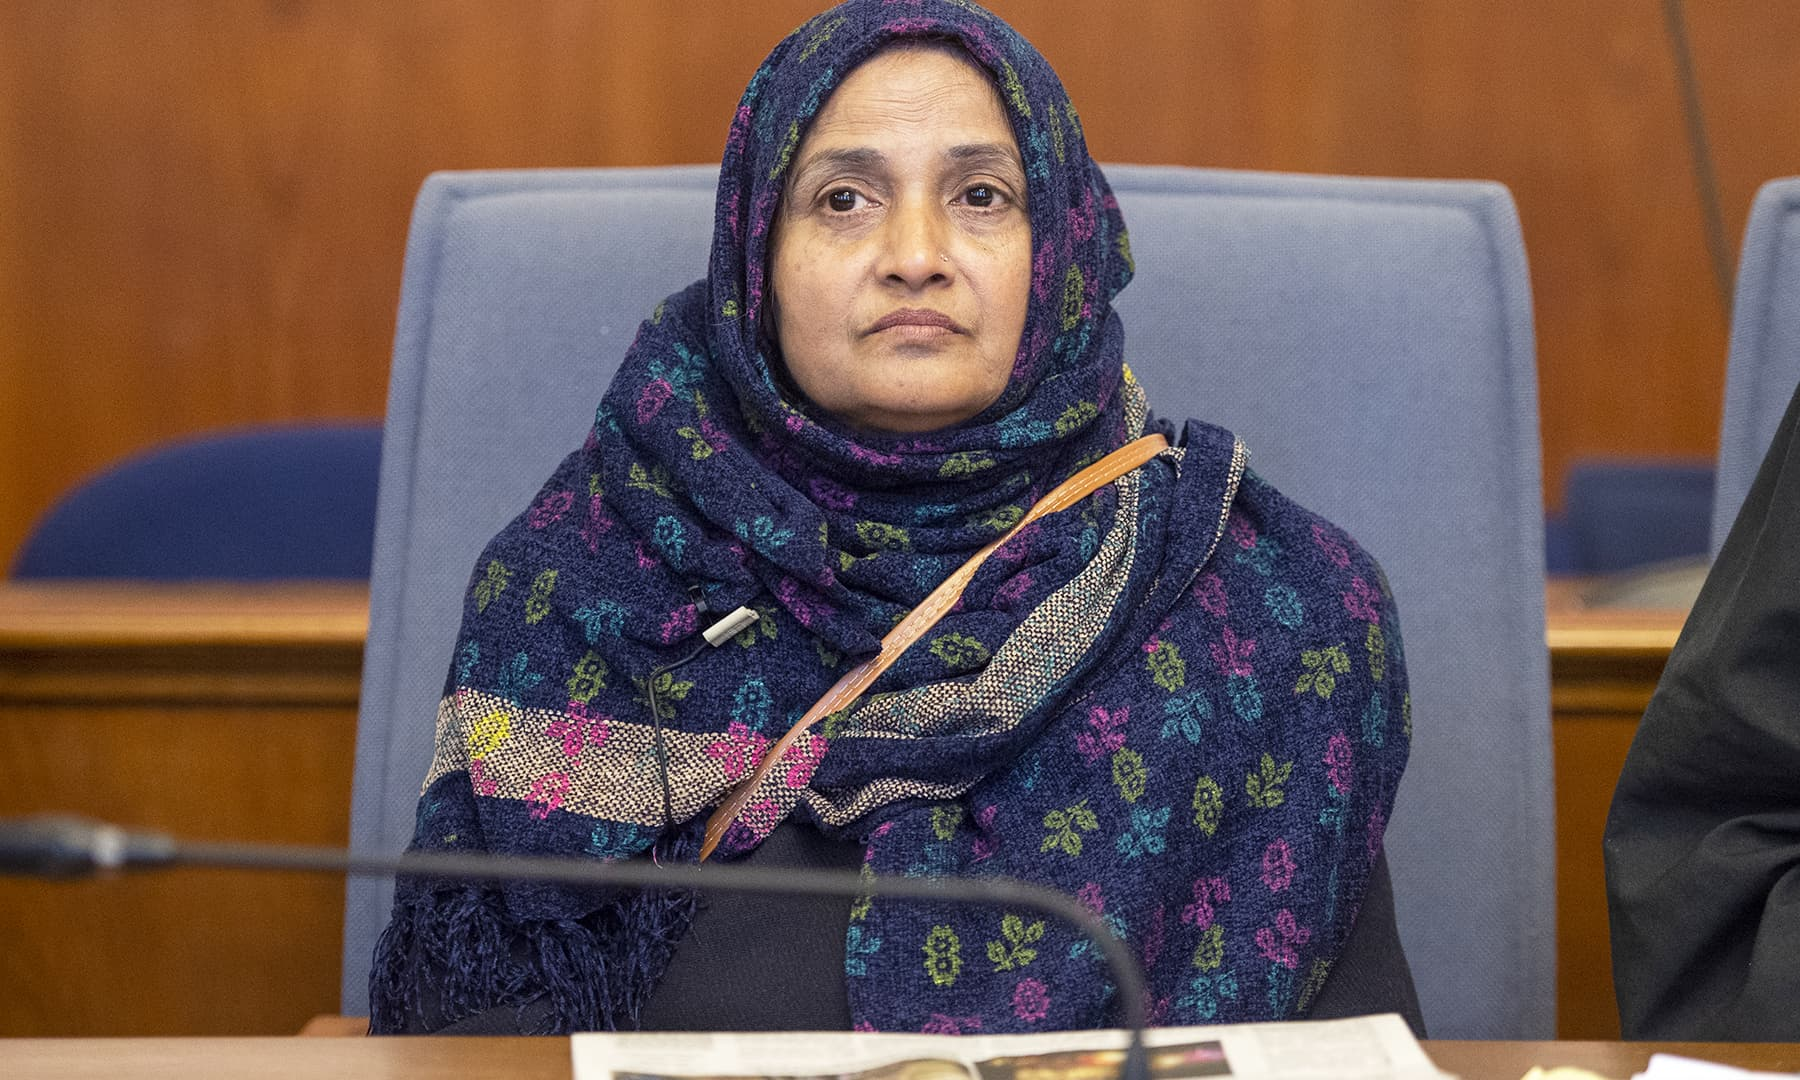 Saeeda Khatoon pictured in the courtroom during the hearing. — AP